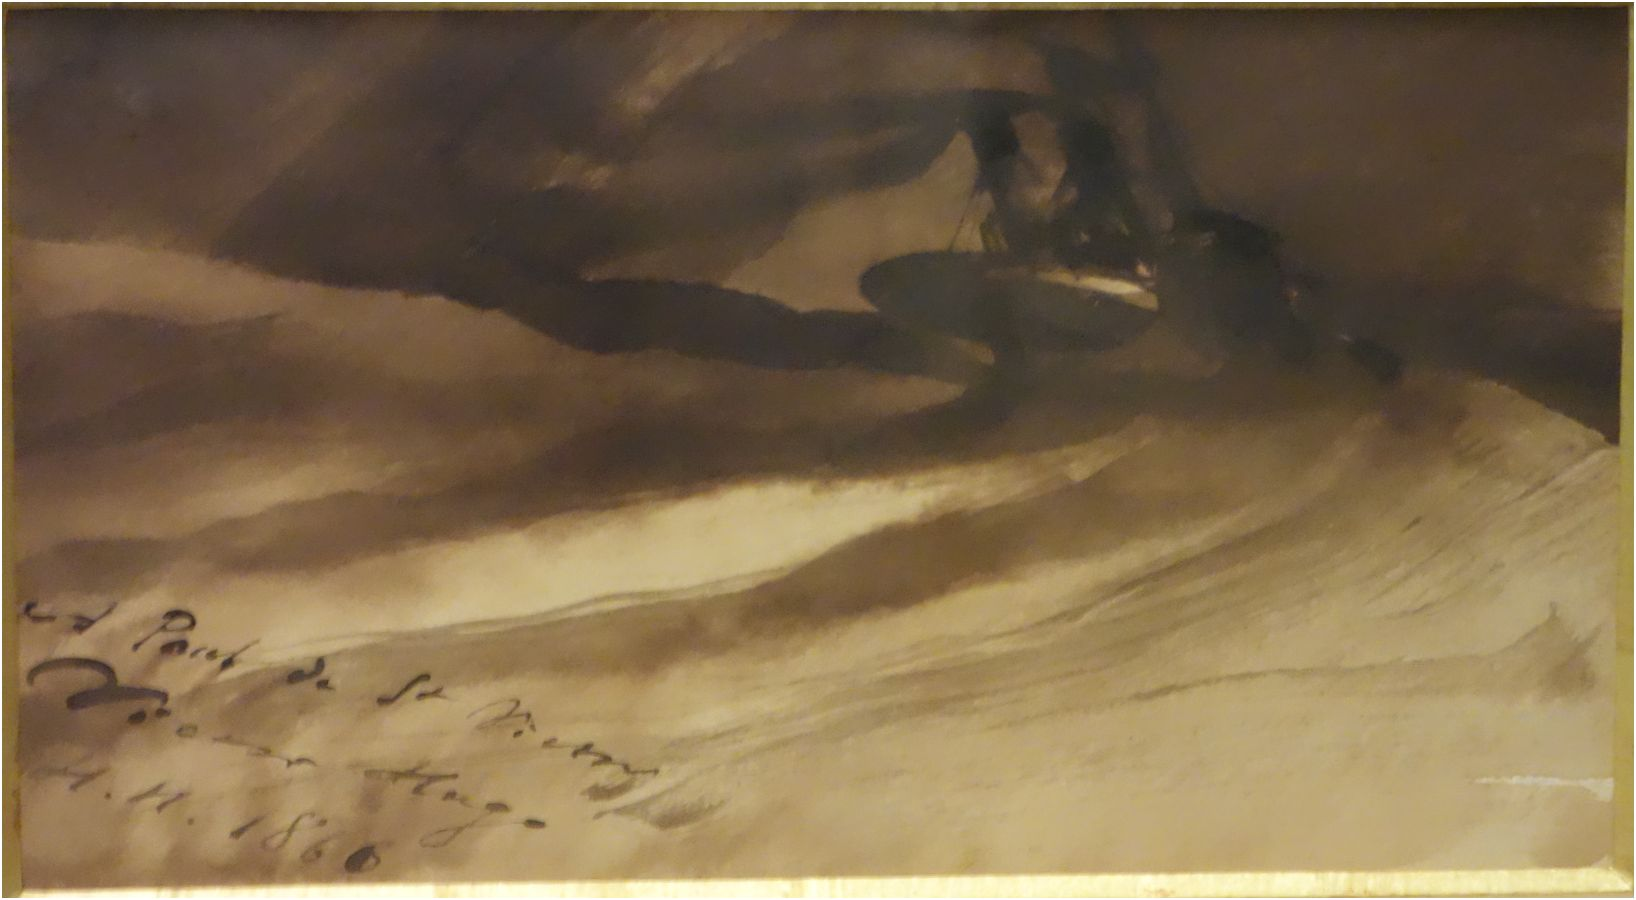 Victor Hugo's own painting of the boat in Toilers of the Sea